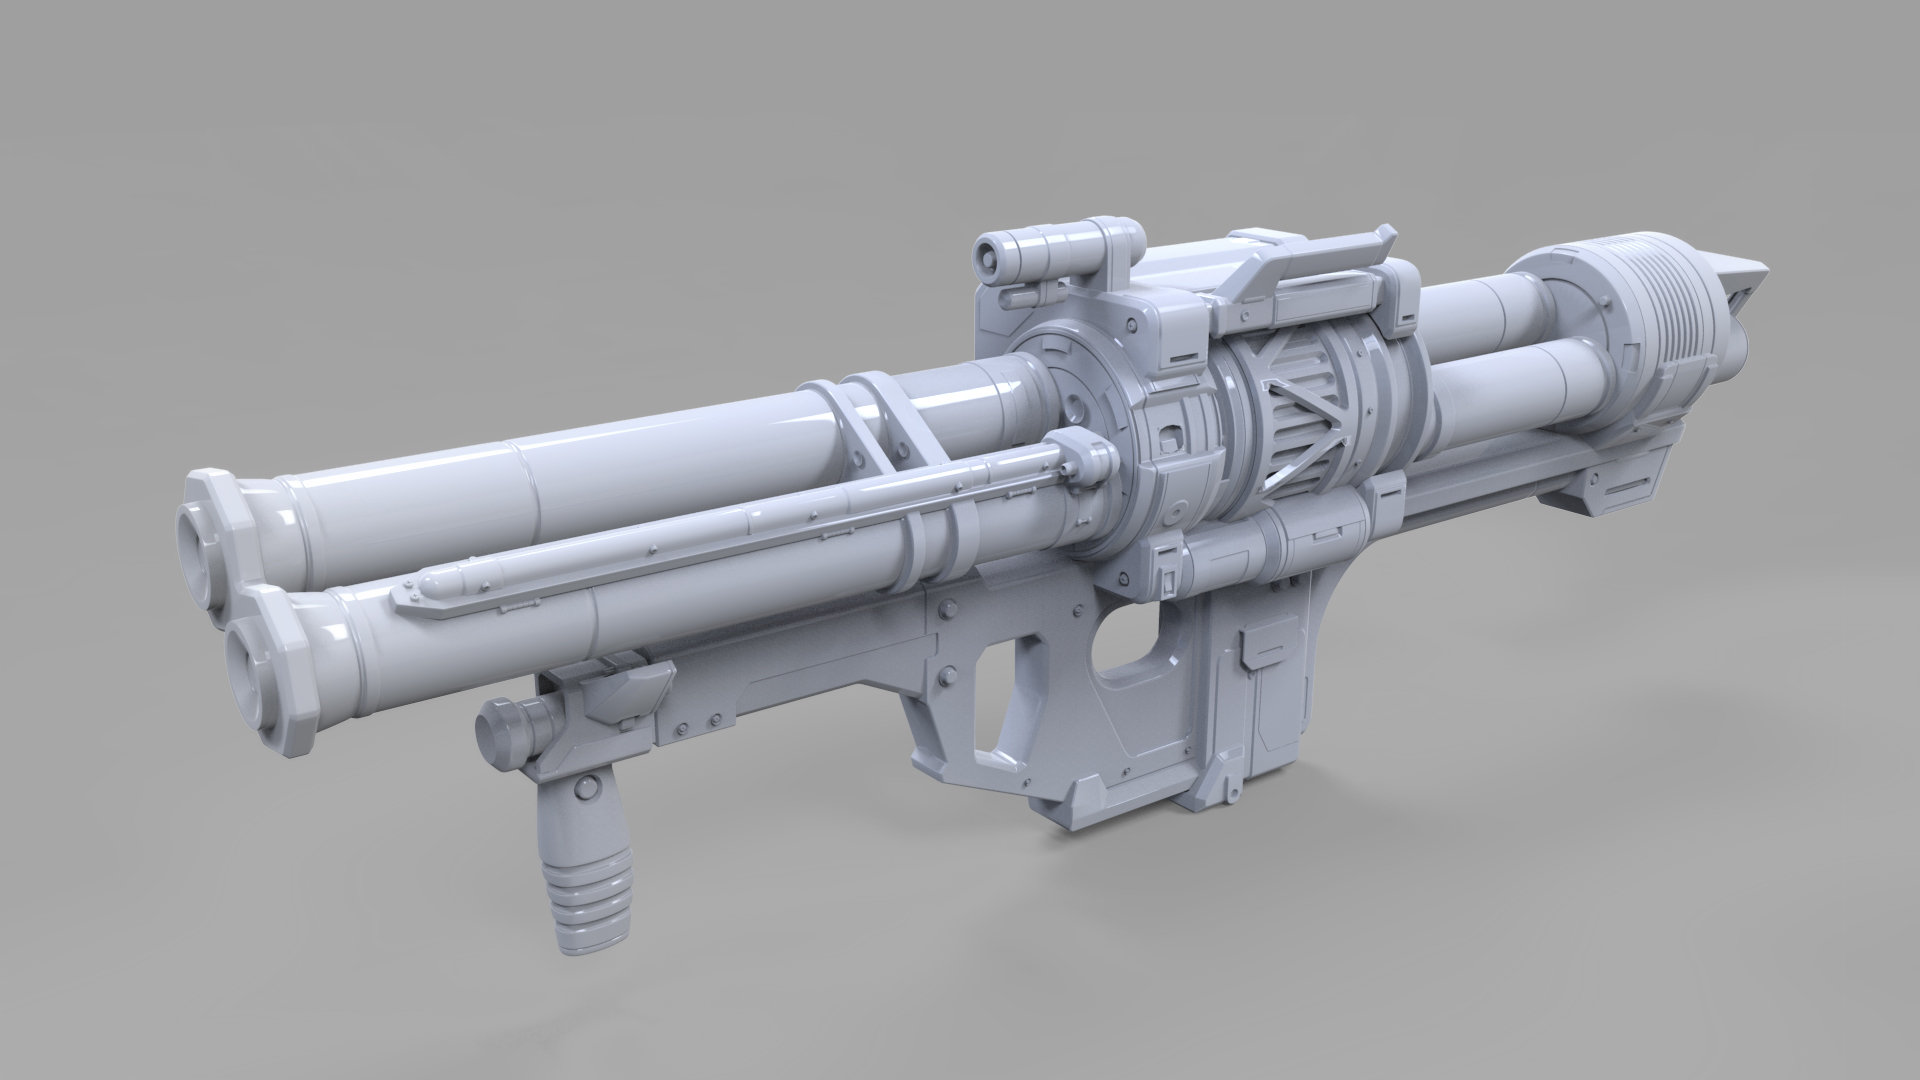 ArtStation - Halo Reach: Rocket Launcher (3d hard surface model